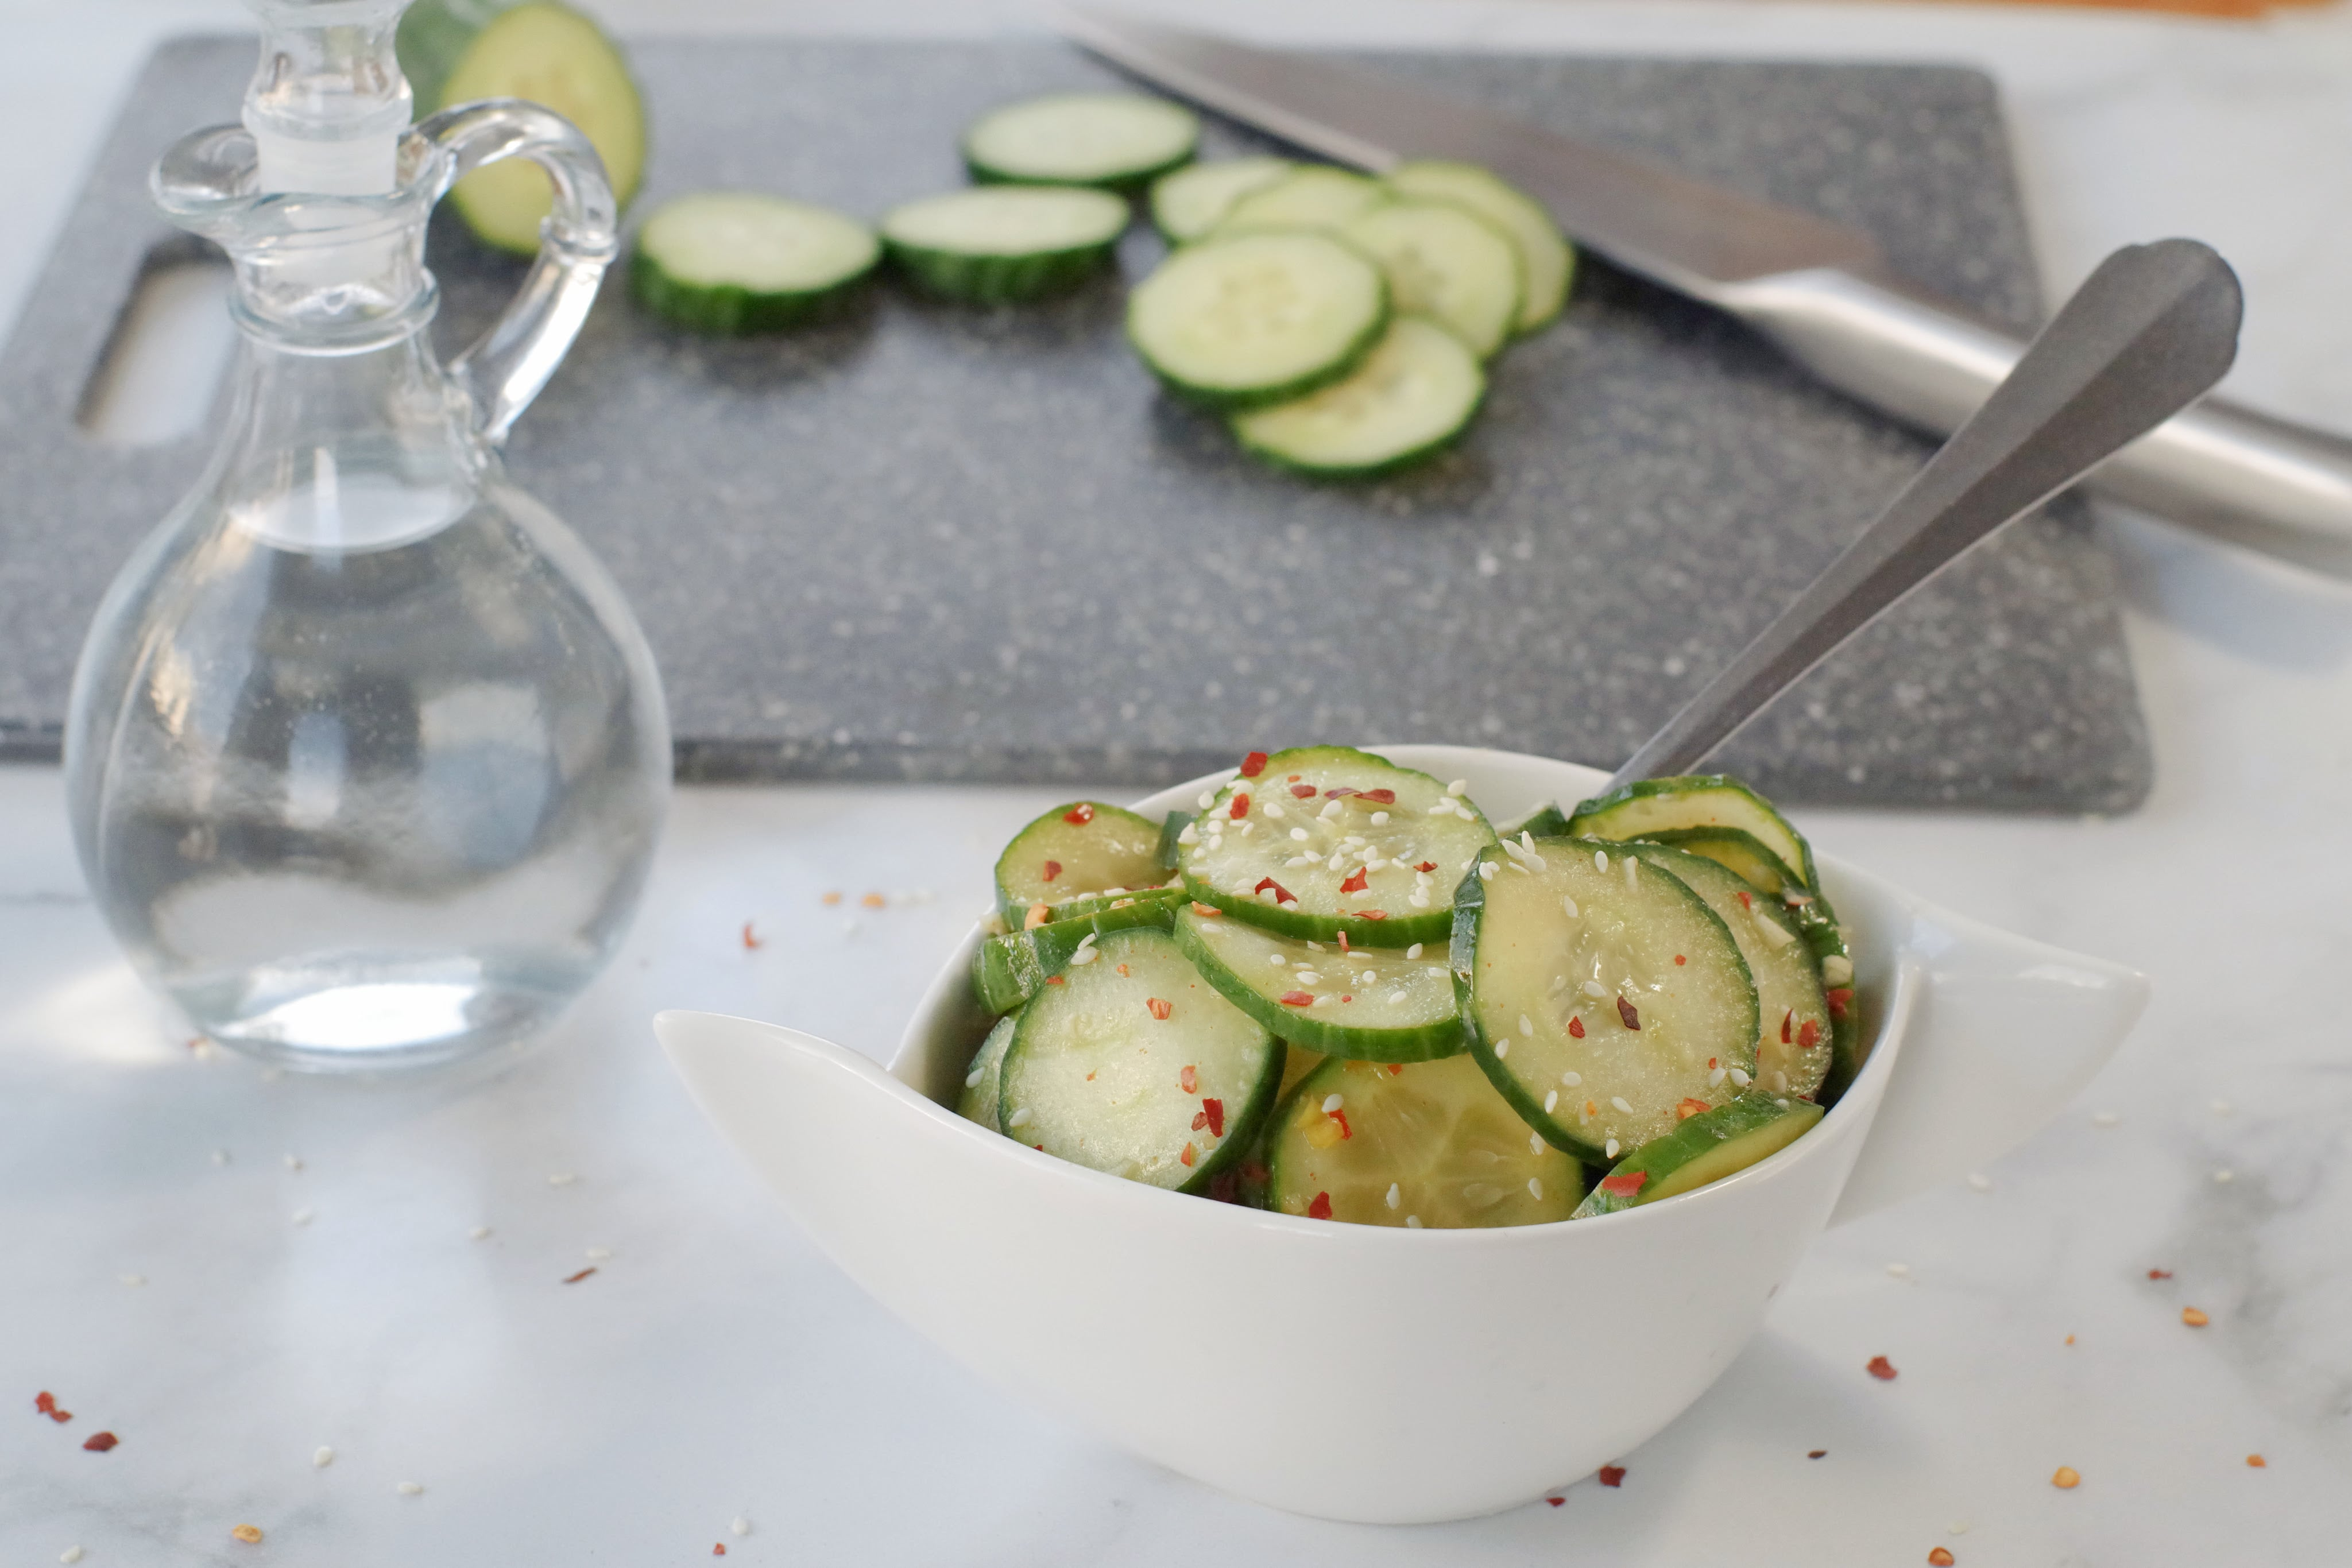 quick Kimchi on grey marble counter surface with glass vinegar container in background as well as a grey cutting board with sliced cucumbers and a knife